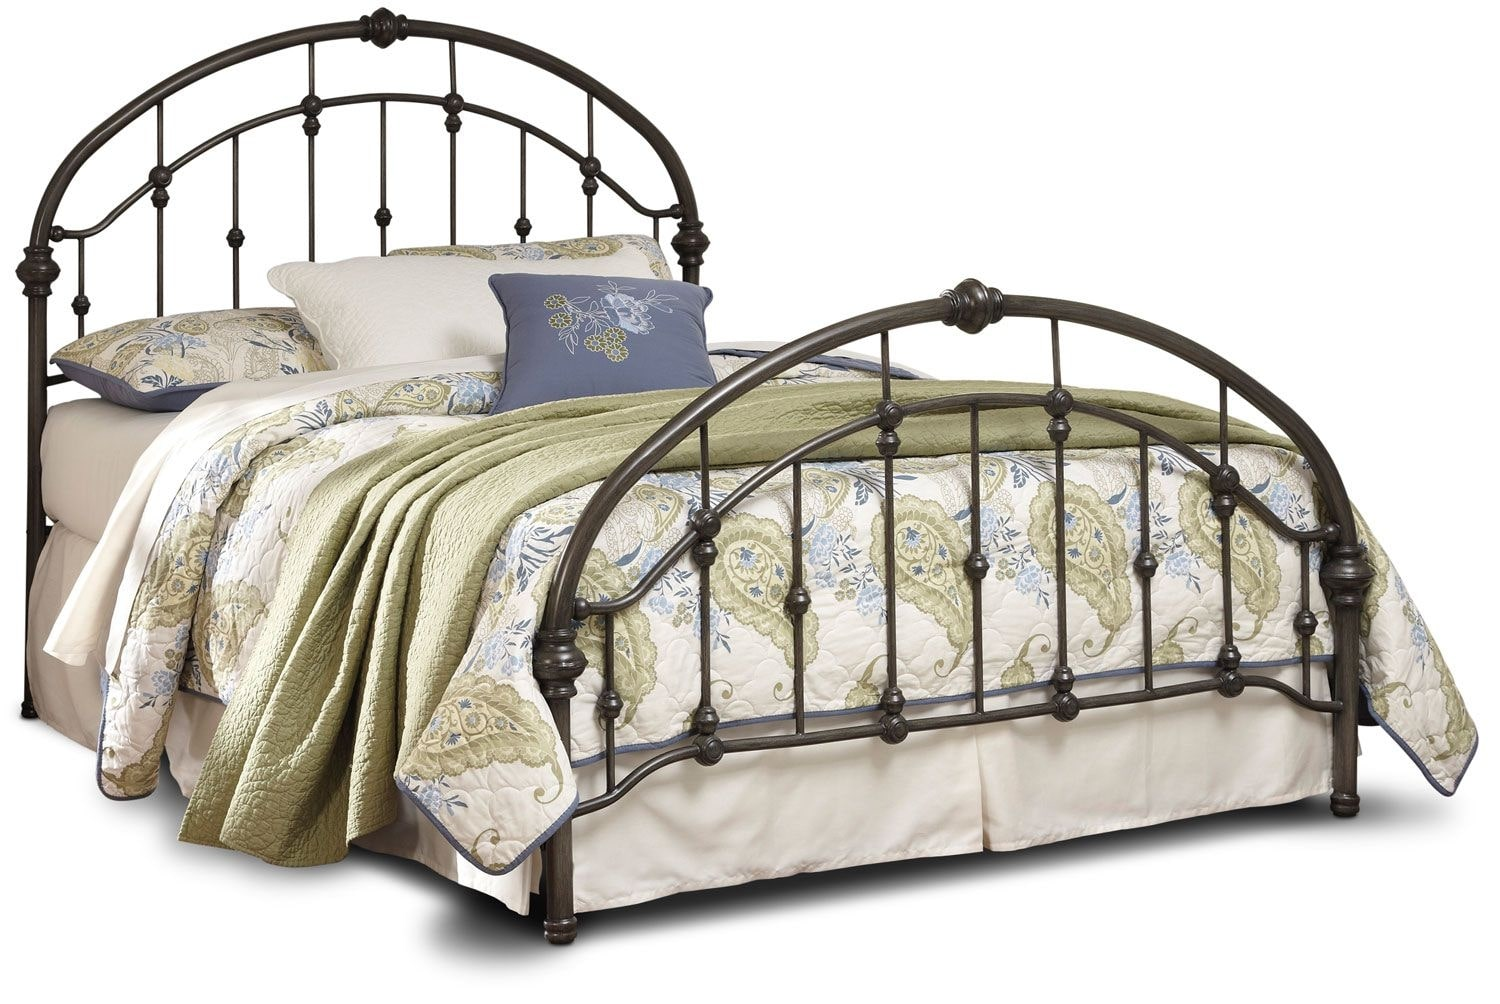 Queen Beds Metal: Nashburg Queen Metal Bed – Bronze